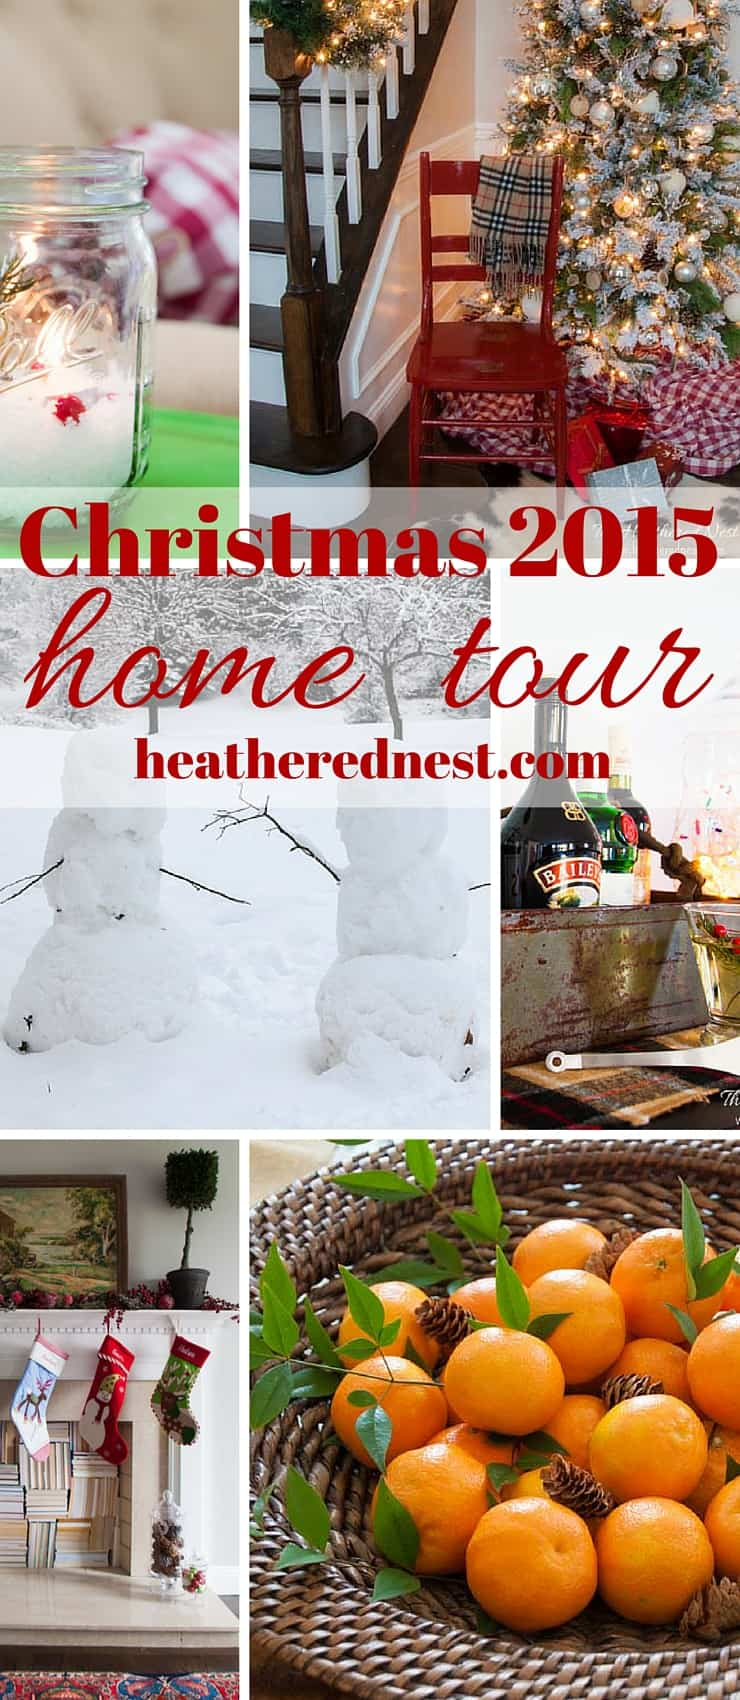 A simple, rustic Christmas 2015 home tour part 2 from heatherednest.com